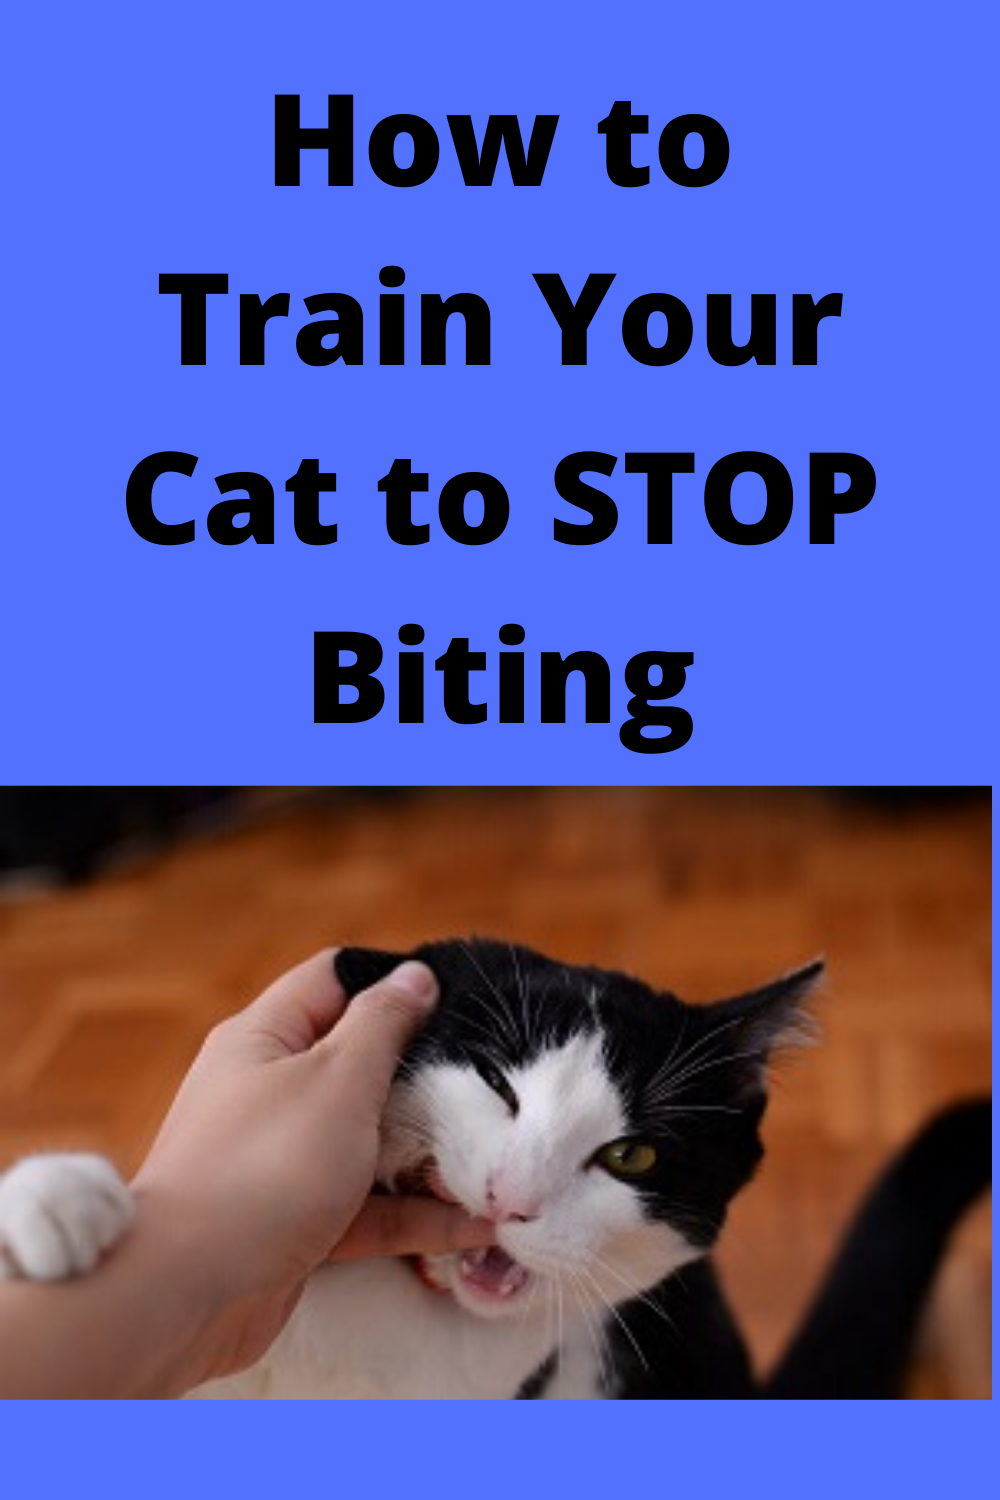 How To Train Your Cat To Stop Biting In 2020 Cat Training Cat Biting How To Train Your